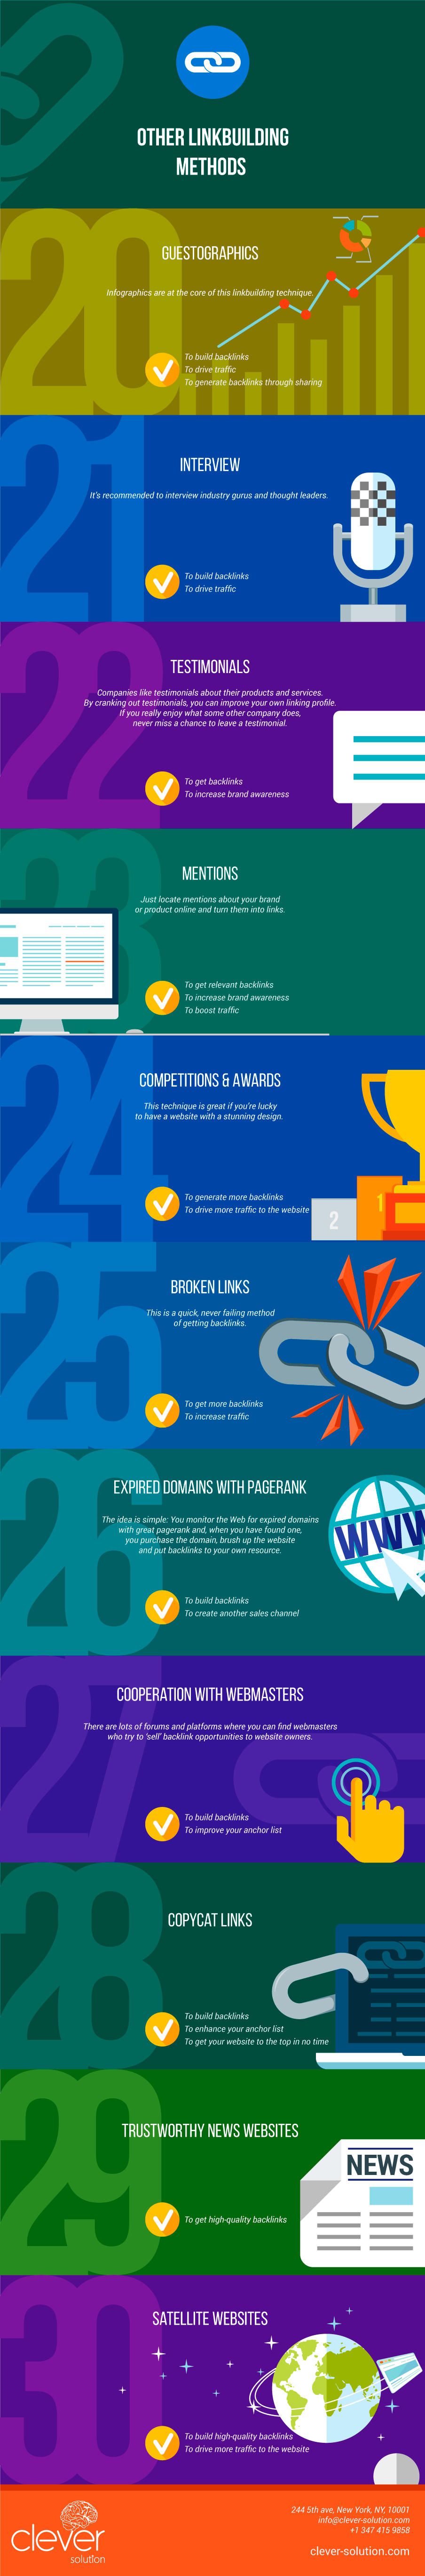 30 Time-Proven Methods to Build & Attract High-Quality Backlinks [Infographic] 20-30